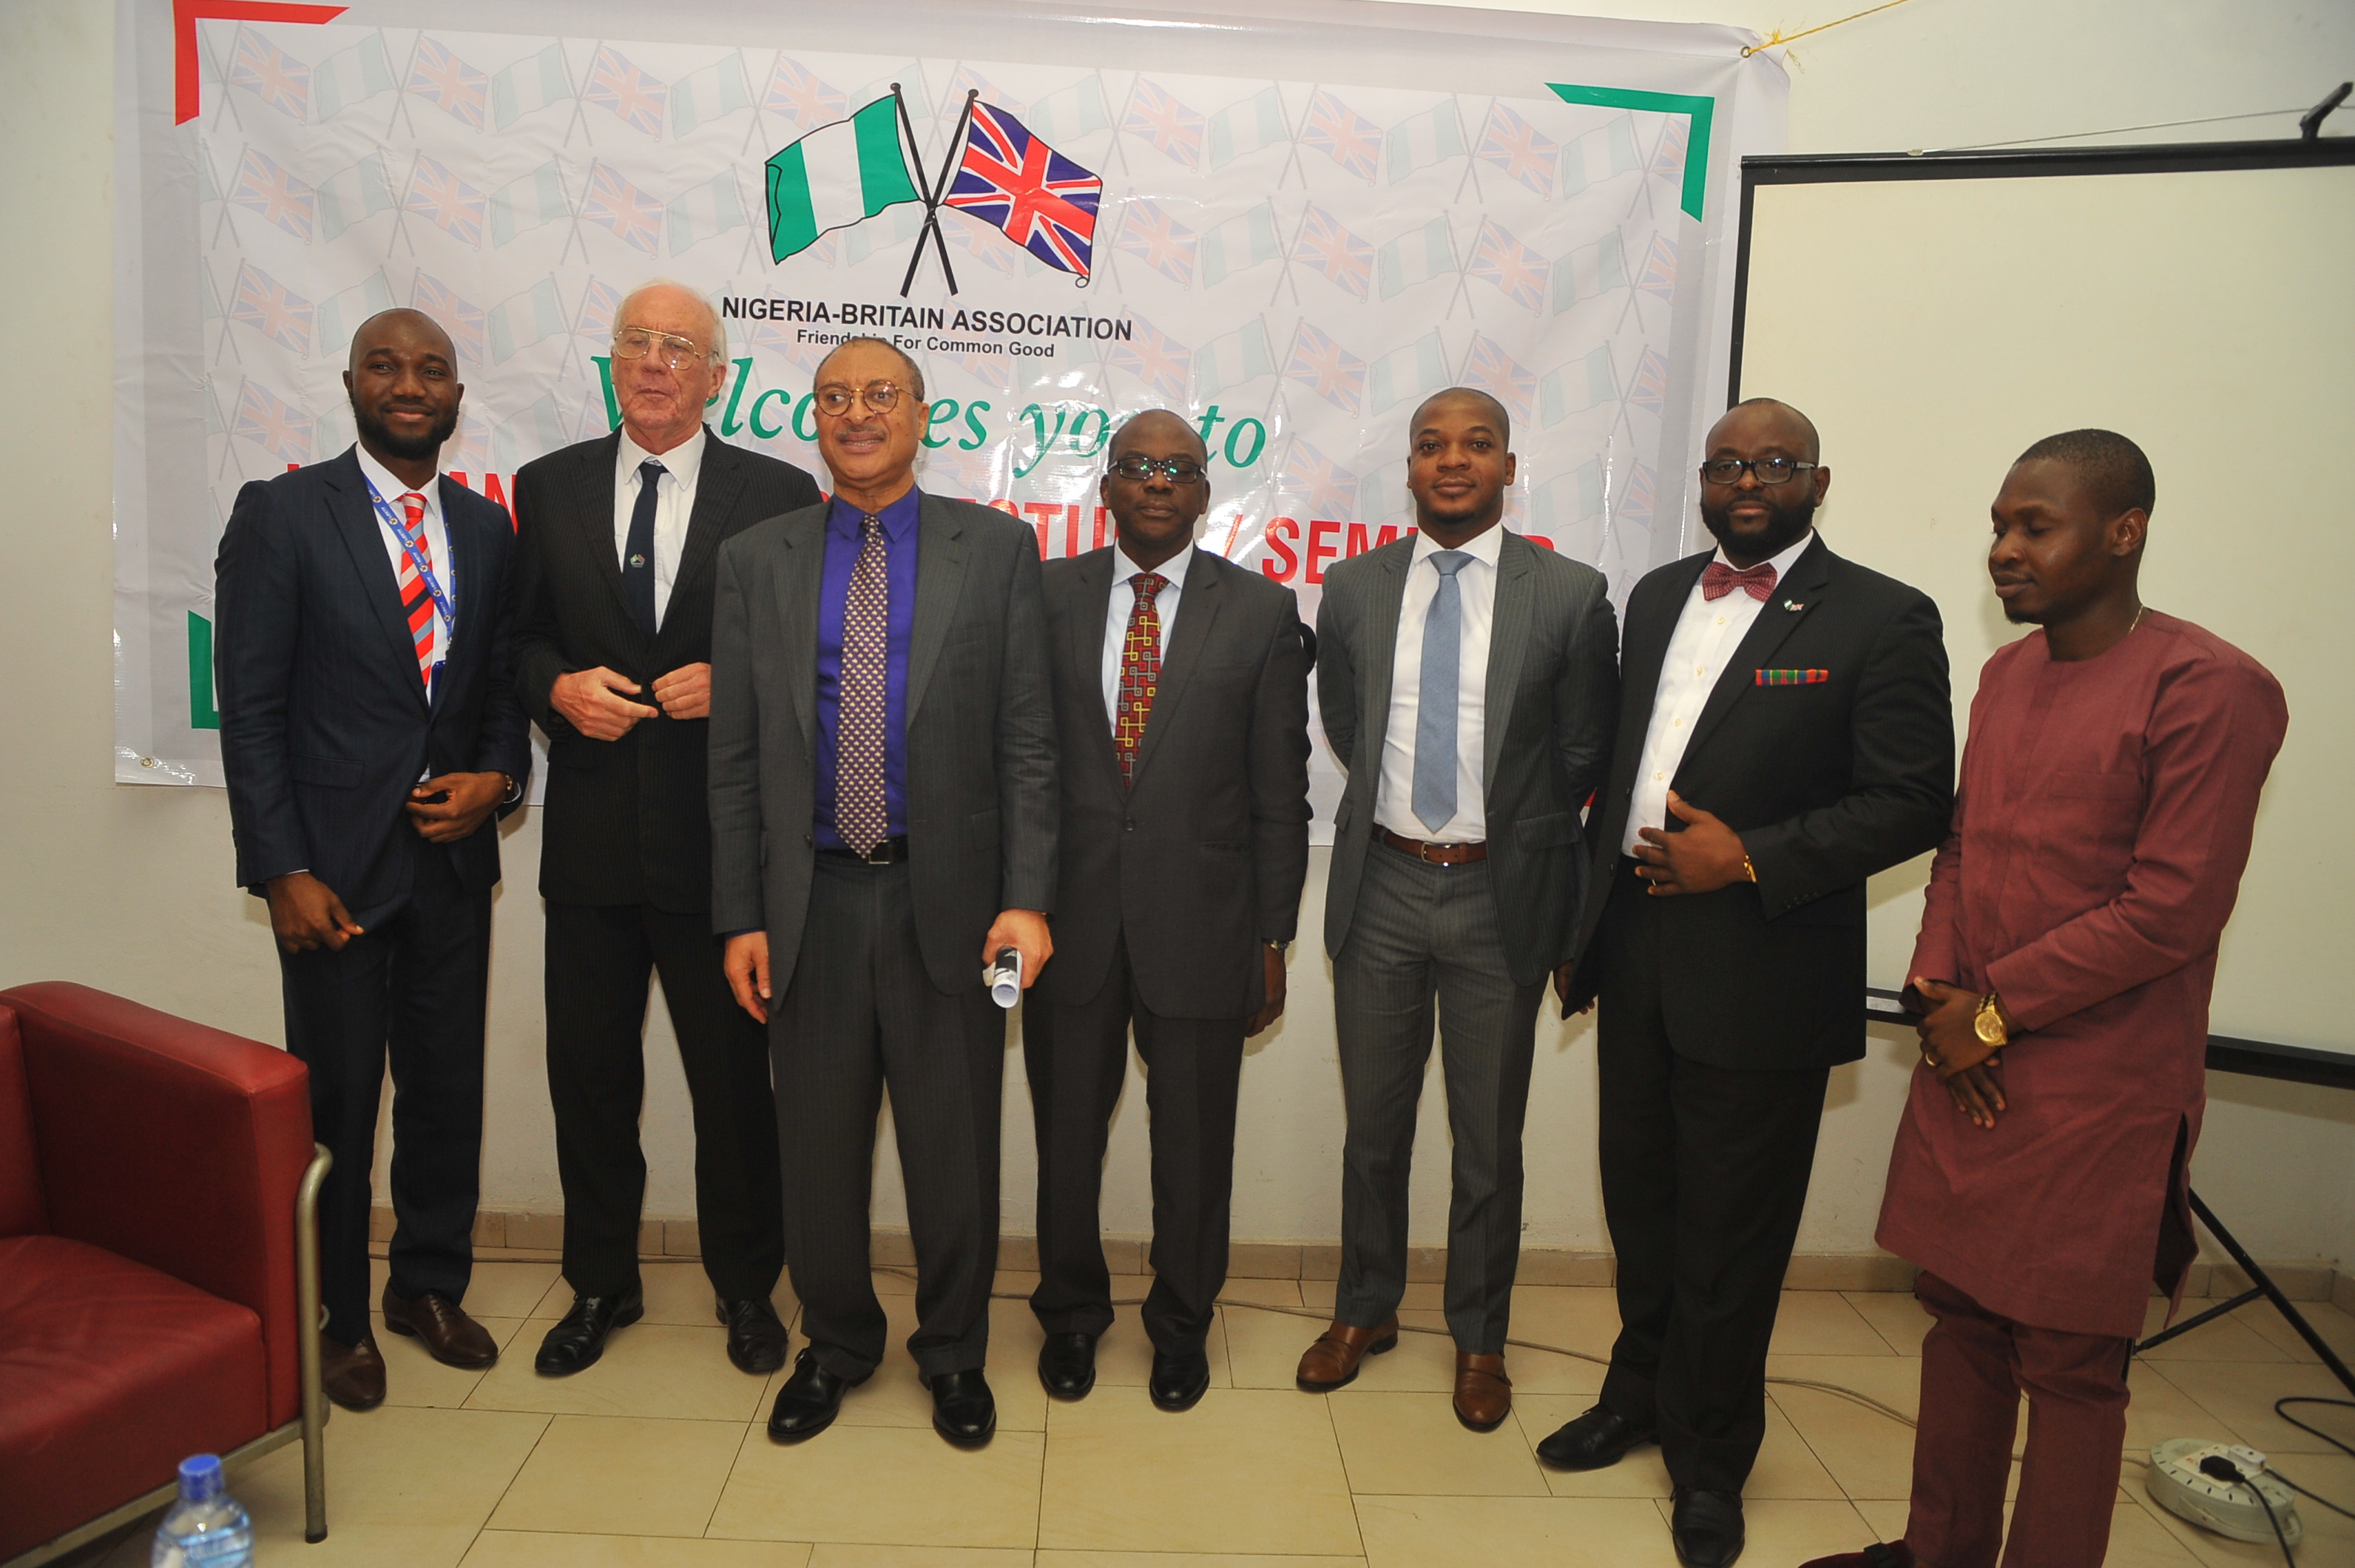 Nigeria-Britain-Association-2017 Lecture series-Council Members of Nigeria Britain Association with Prof Pat Utomi, Wale Anifowoshe